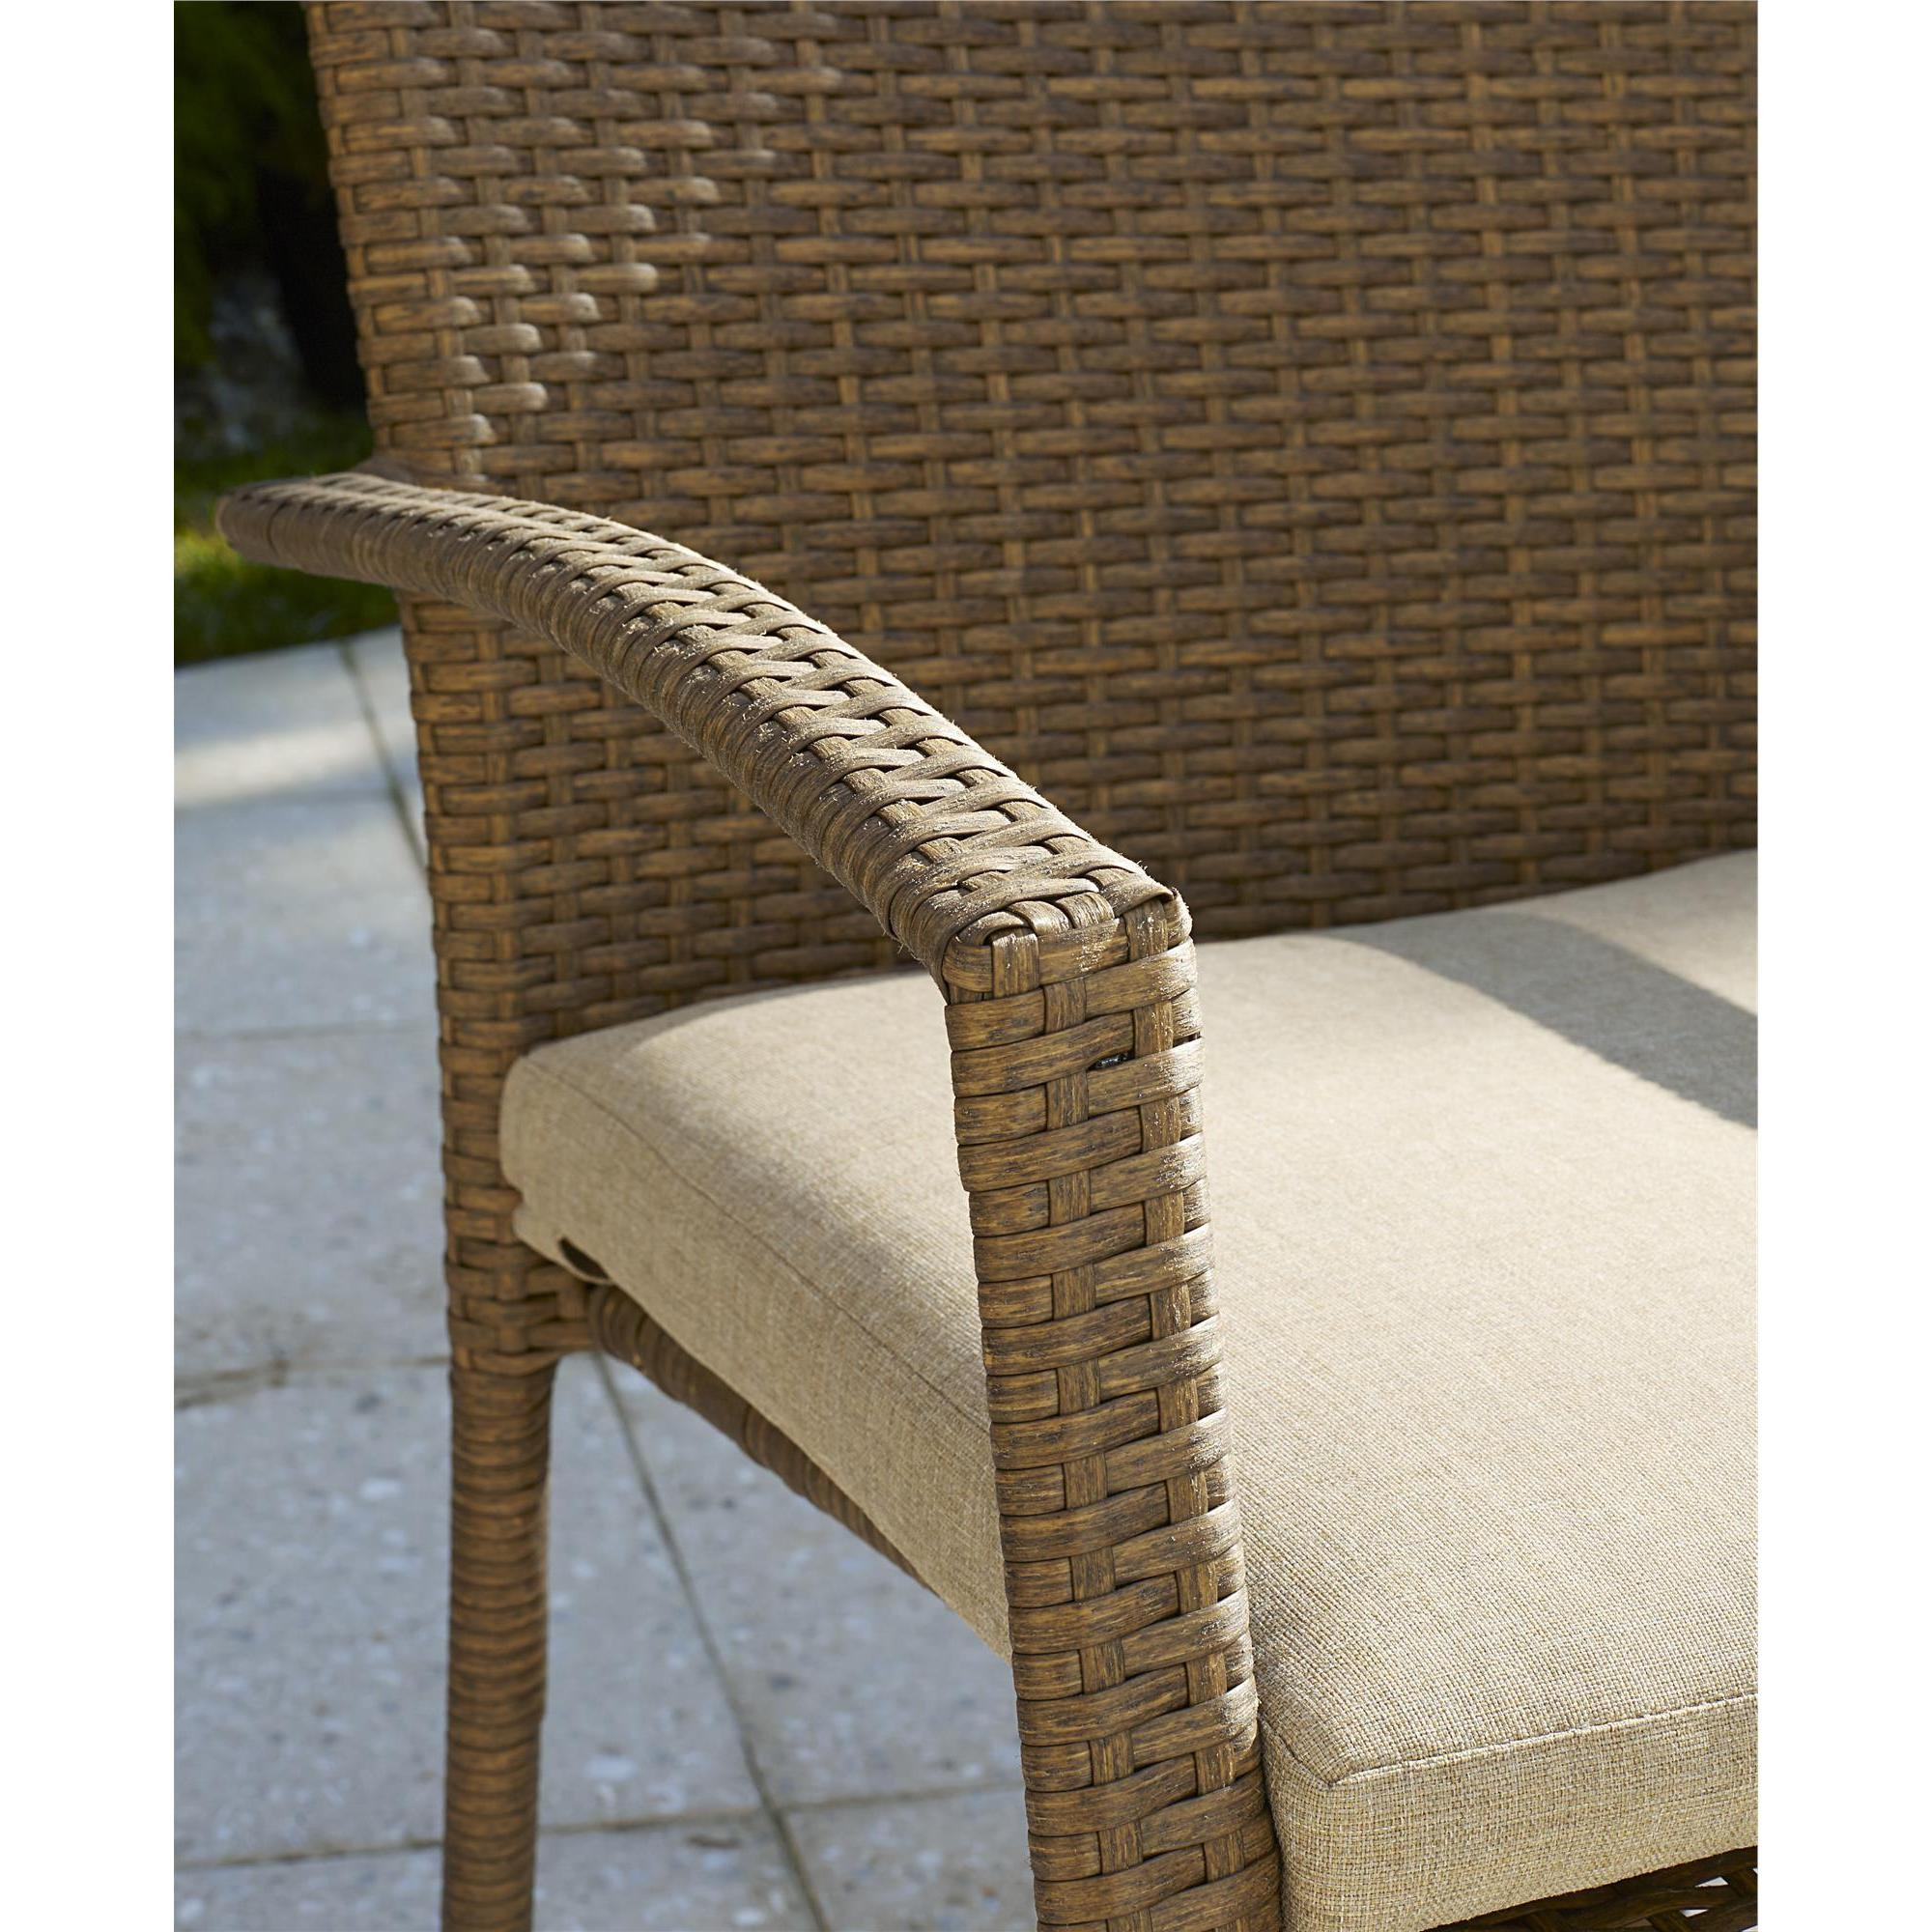 Cosco Outdoor Steel Woven Wicker High Top Bistro Set Intended For Popular Cosco Outdoor Steel Woven Wicker Chaise Lounge Chairs (View 23 of 25)